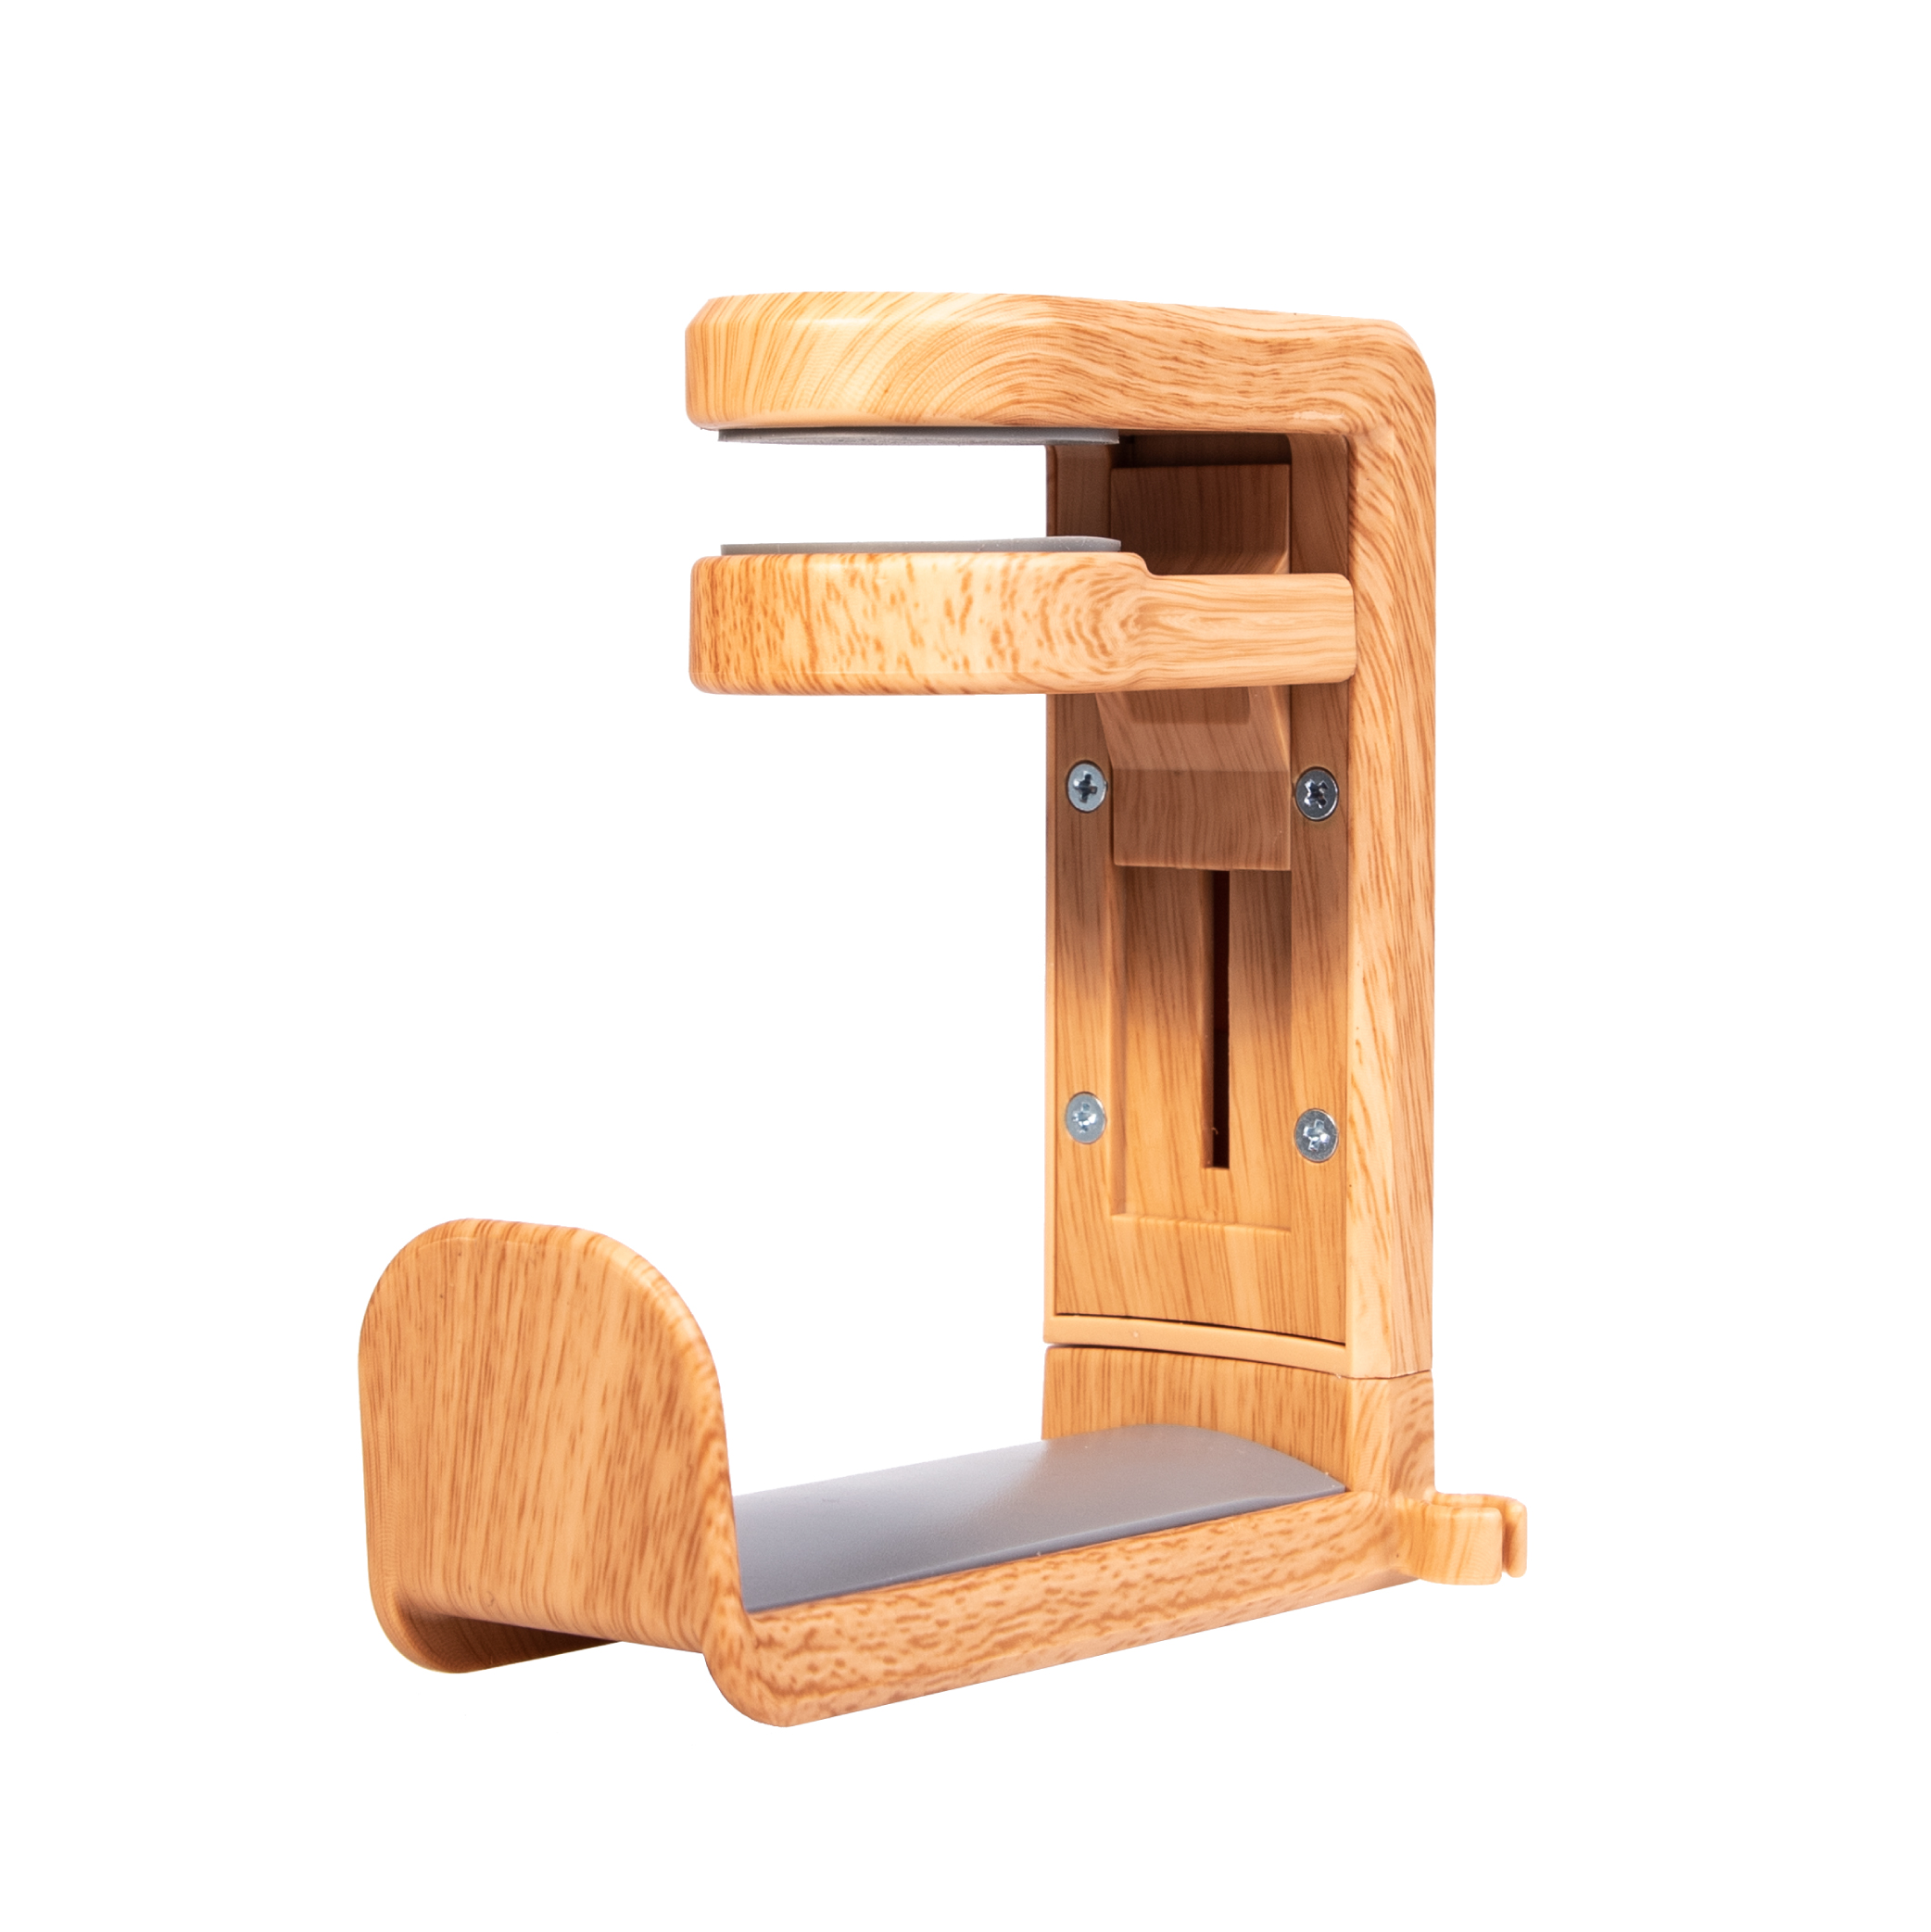 MT-AM05 Headphone Holder - Wooden Brown